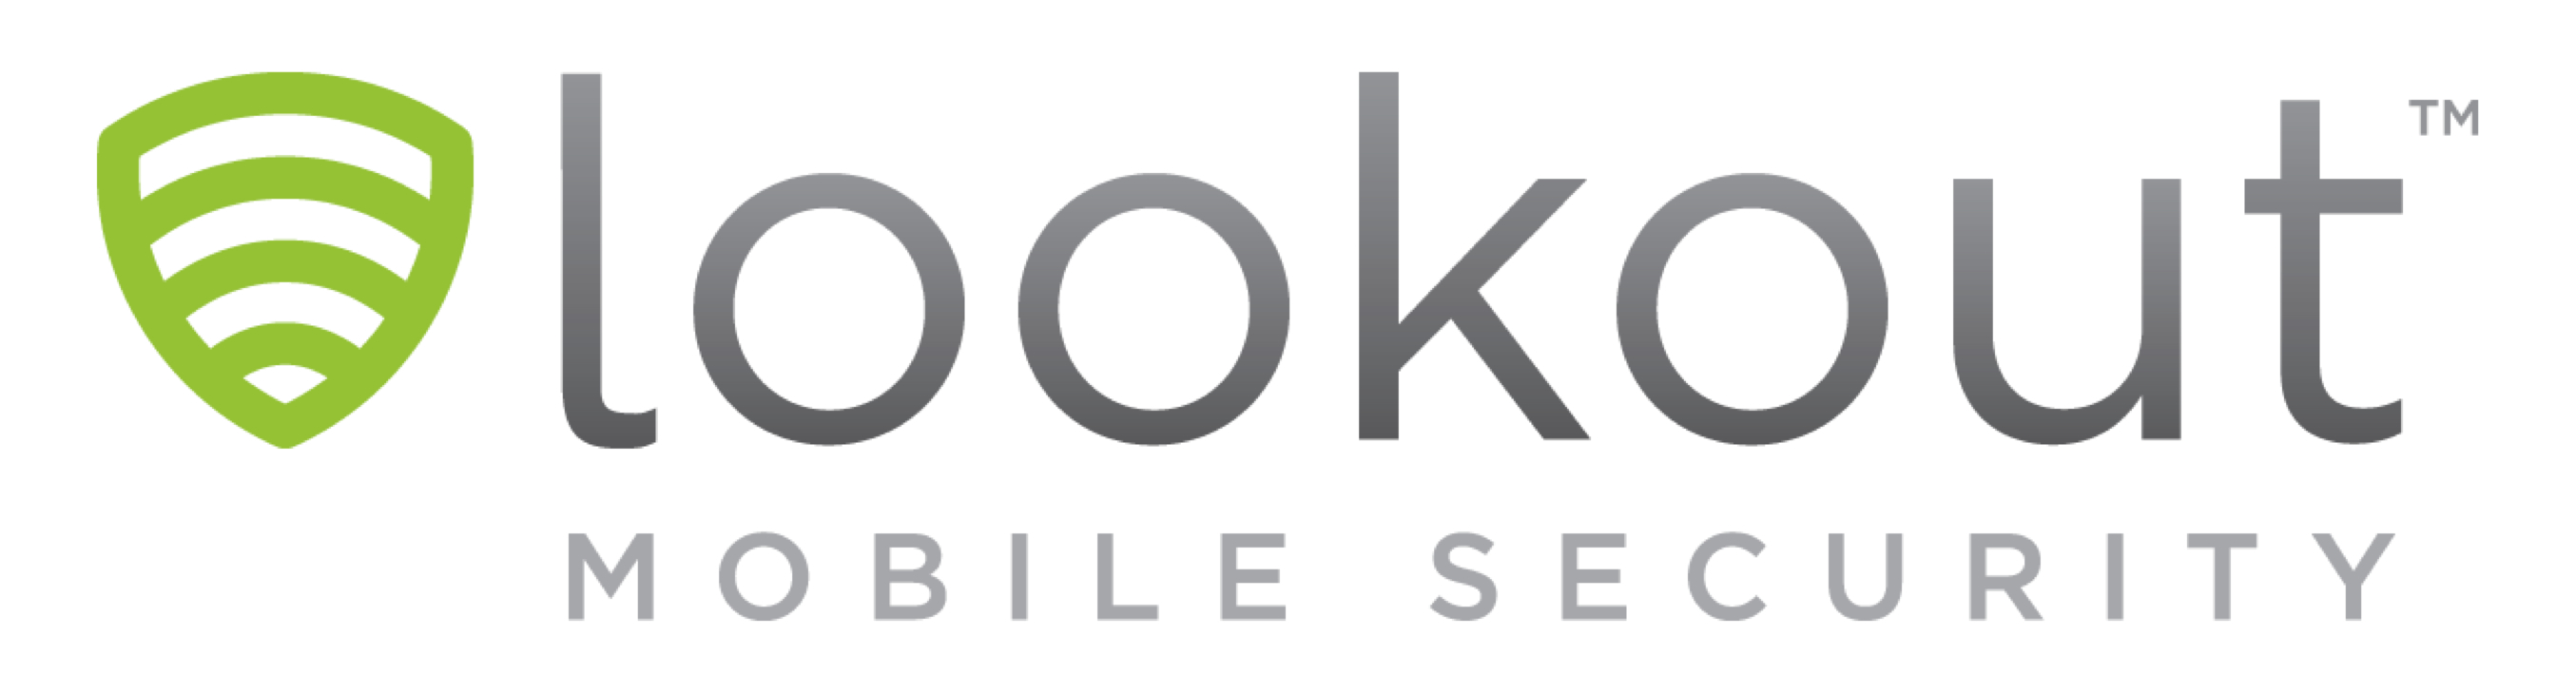 Lookout: Cross-Platform Mobile Security [#FF]